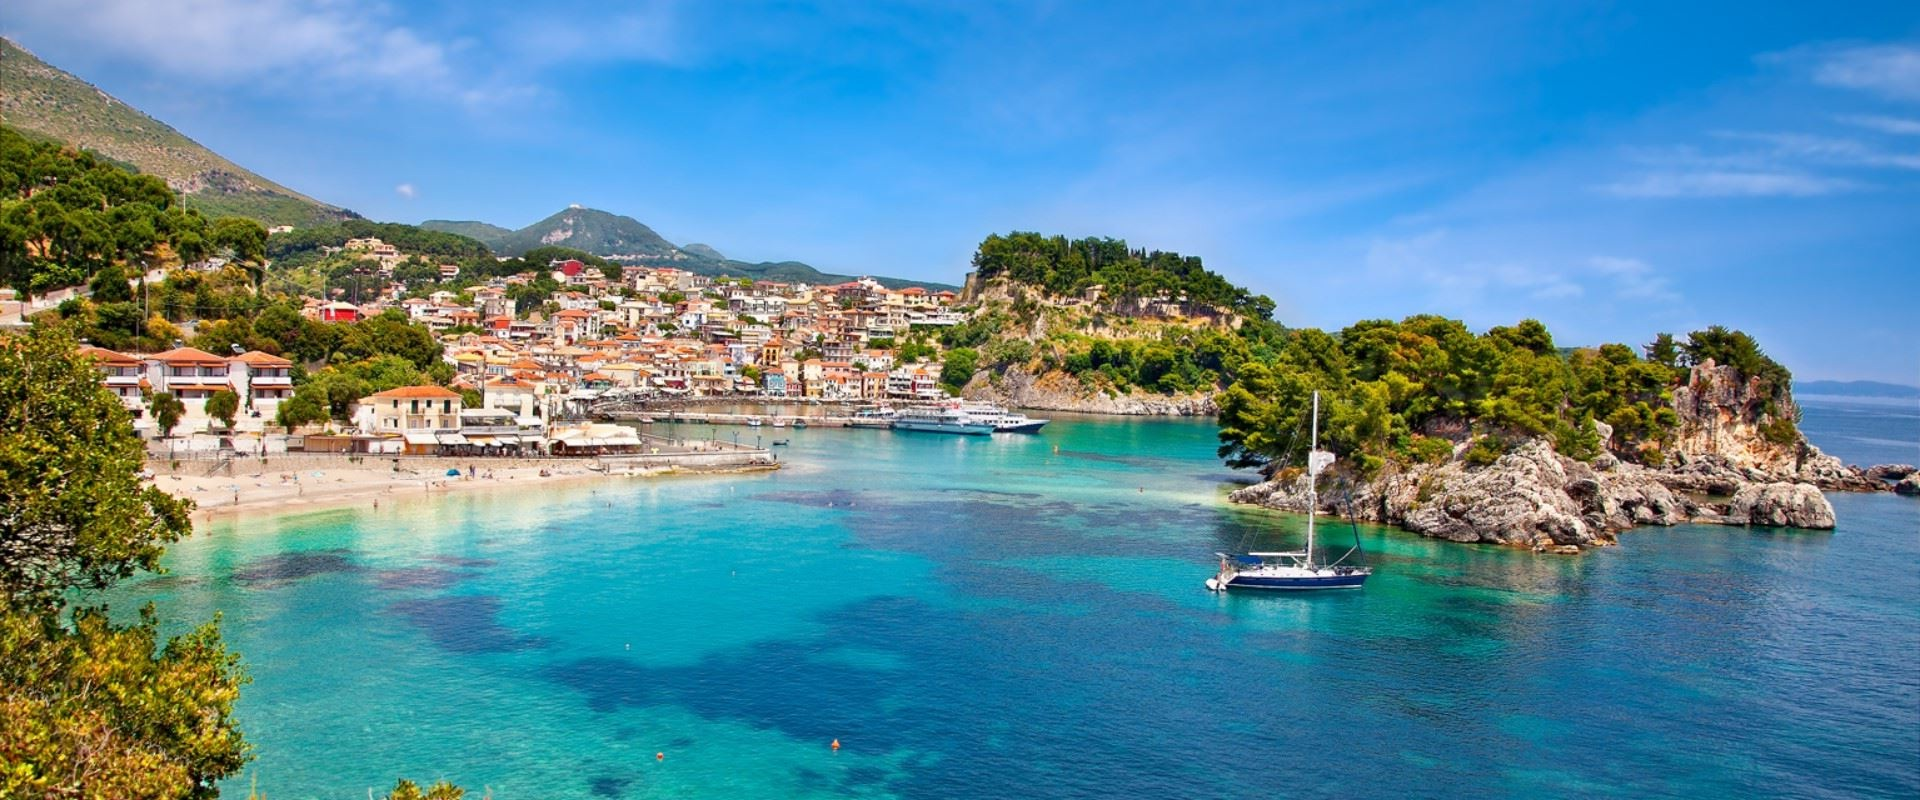 PARGA - BLUE GREEN WATERS